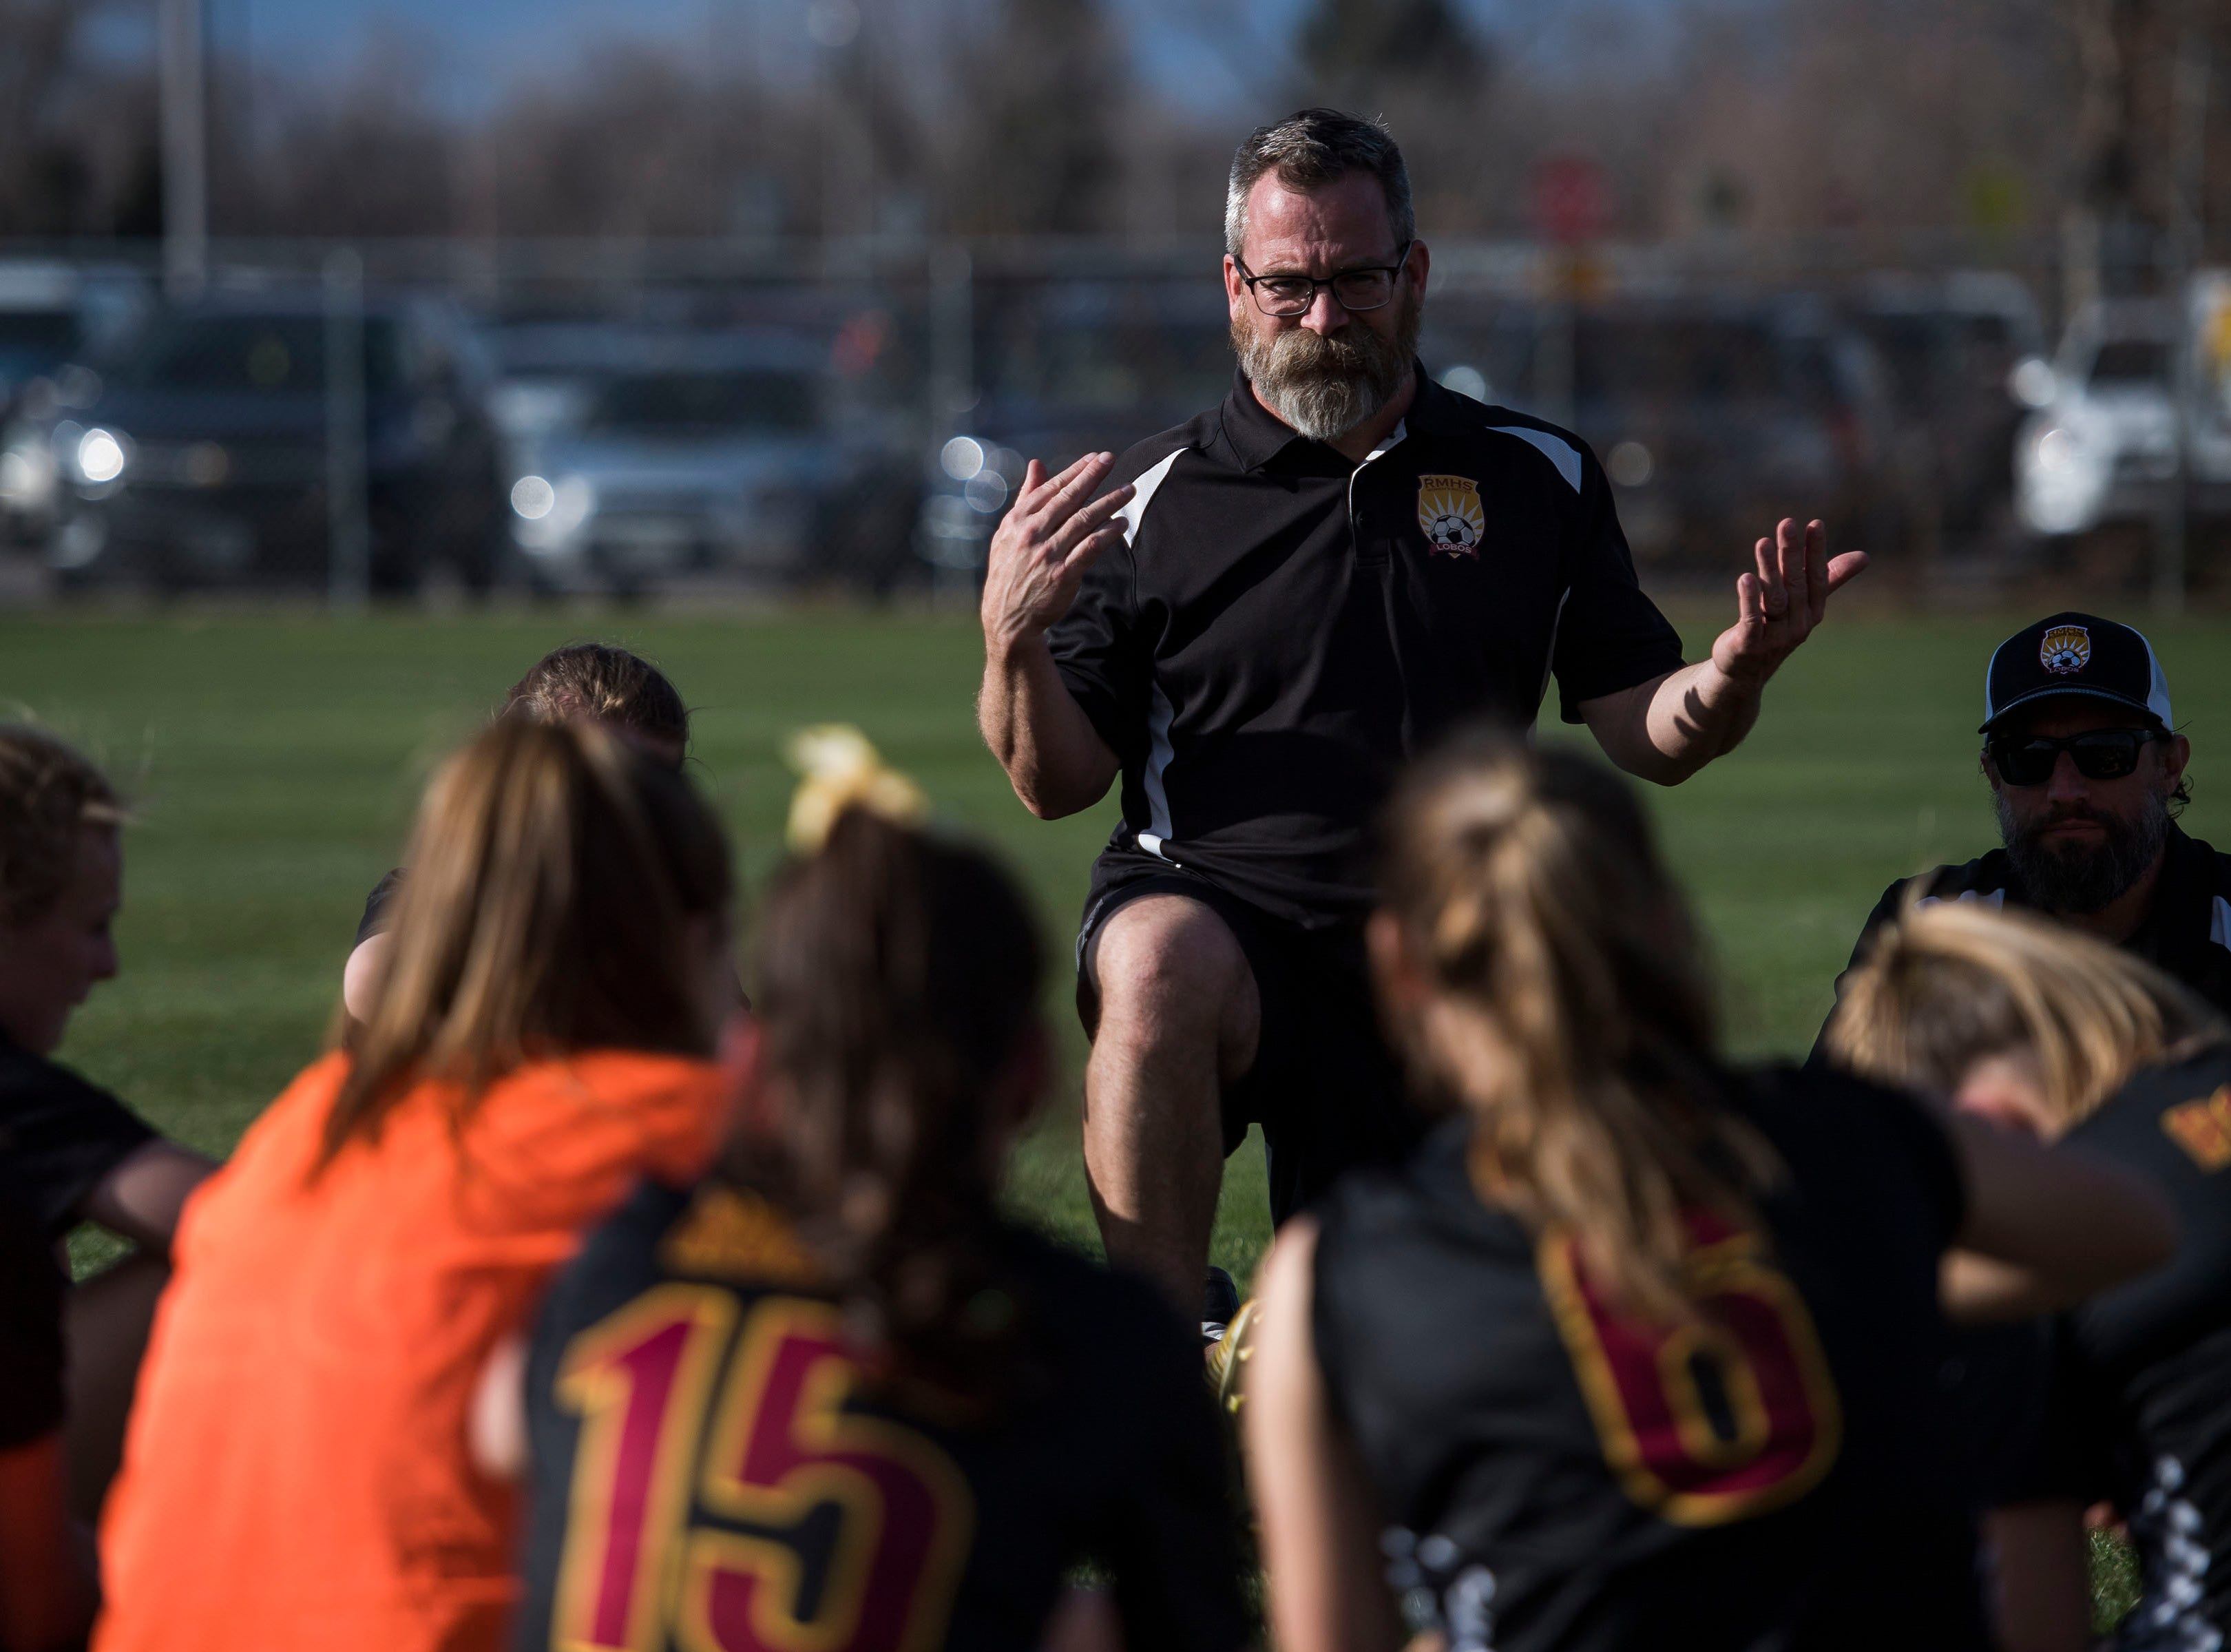 Rocky Mountain High School head coach Ron Clark talks with his team at halftime during a game against Fossil Ridge High School on Friday, April 4, 2019, at Colorado State University's soccer field in Fort Collins, Colo.